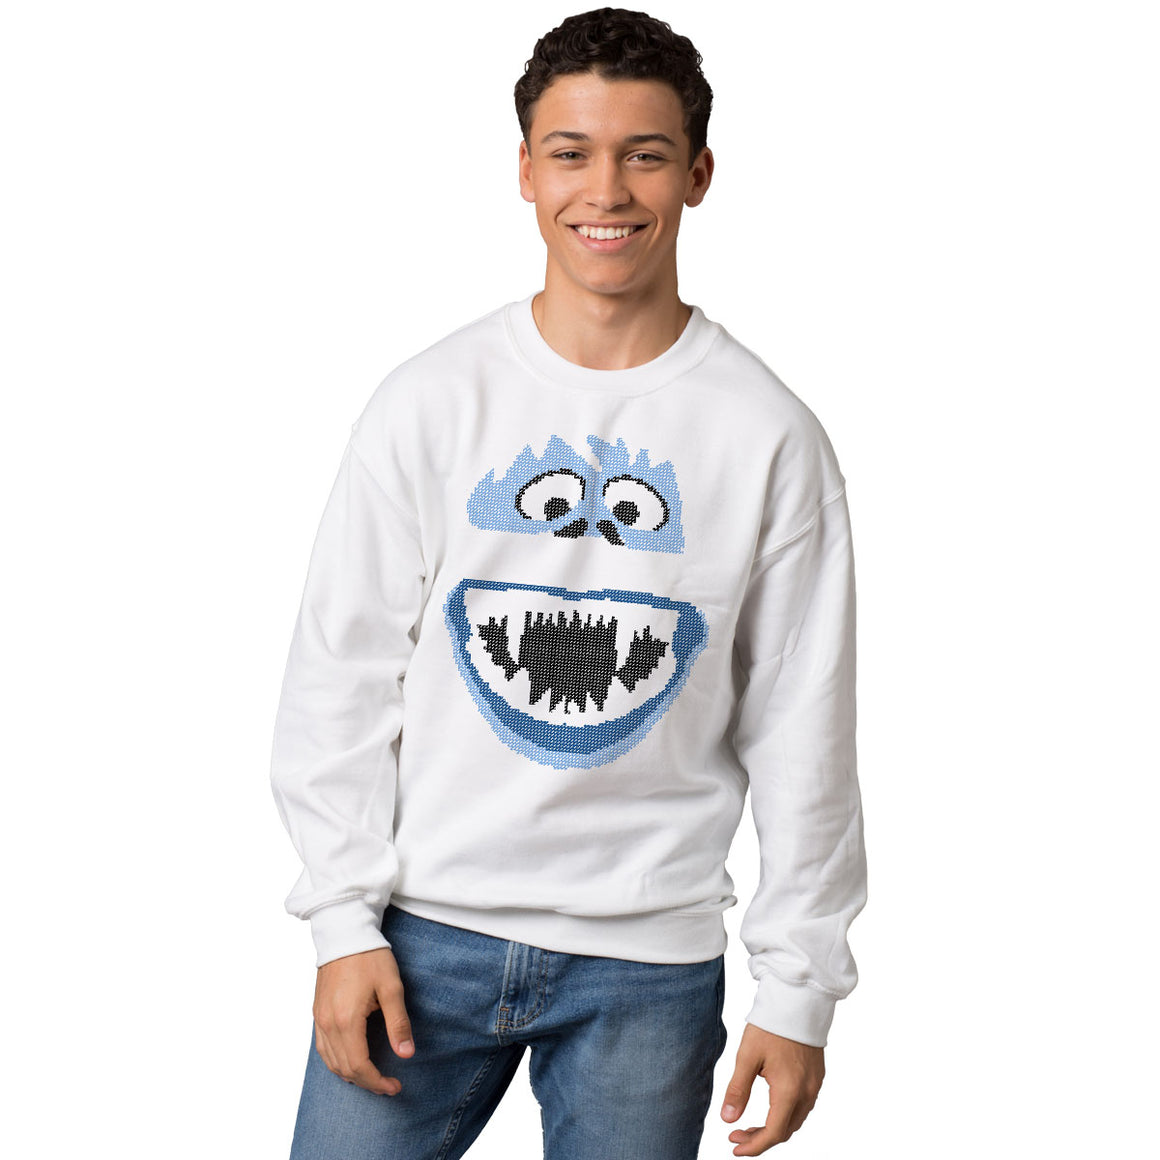 The Christmas Yeti Ugly Sweatshirt